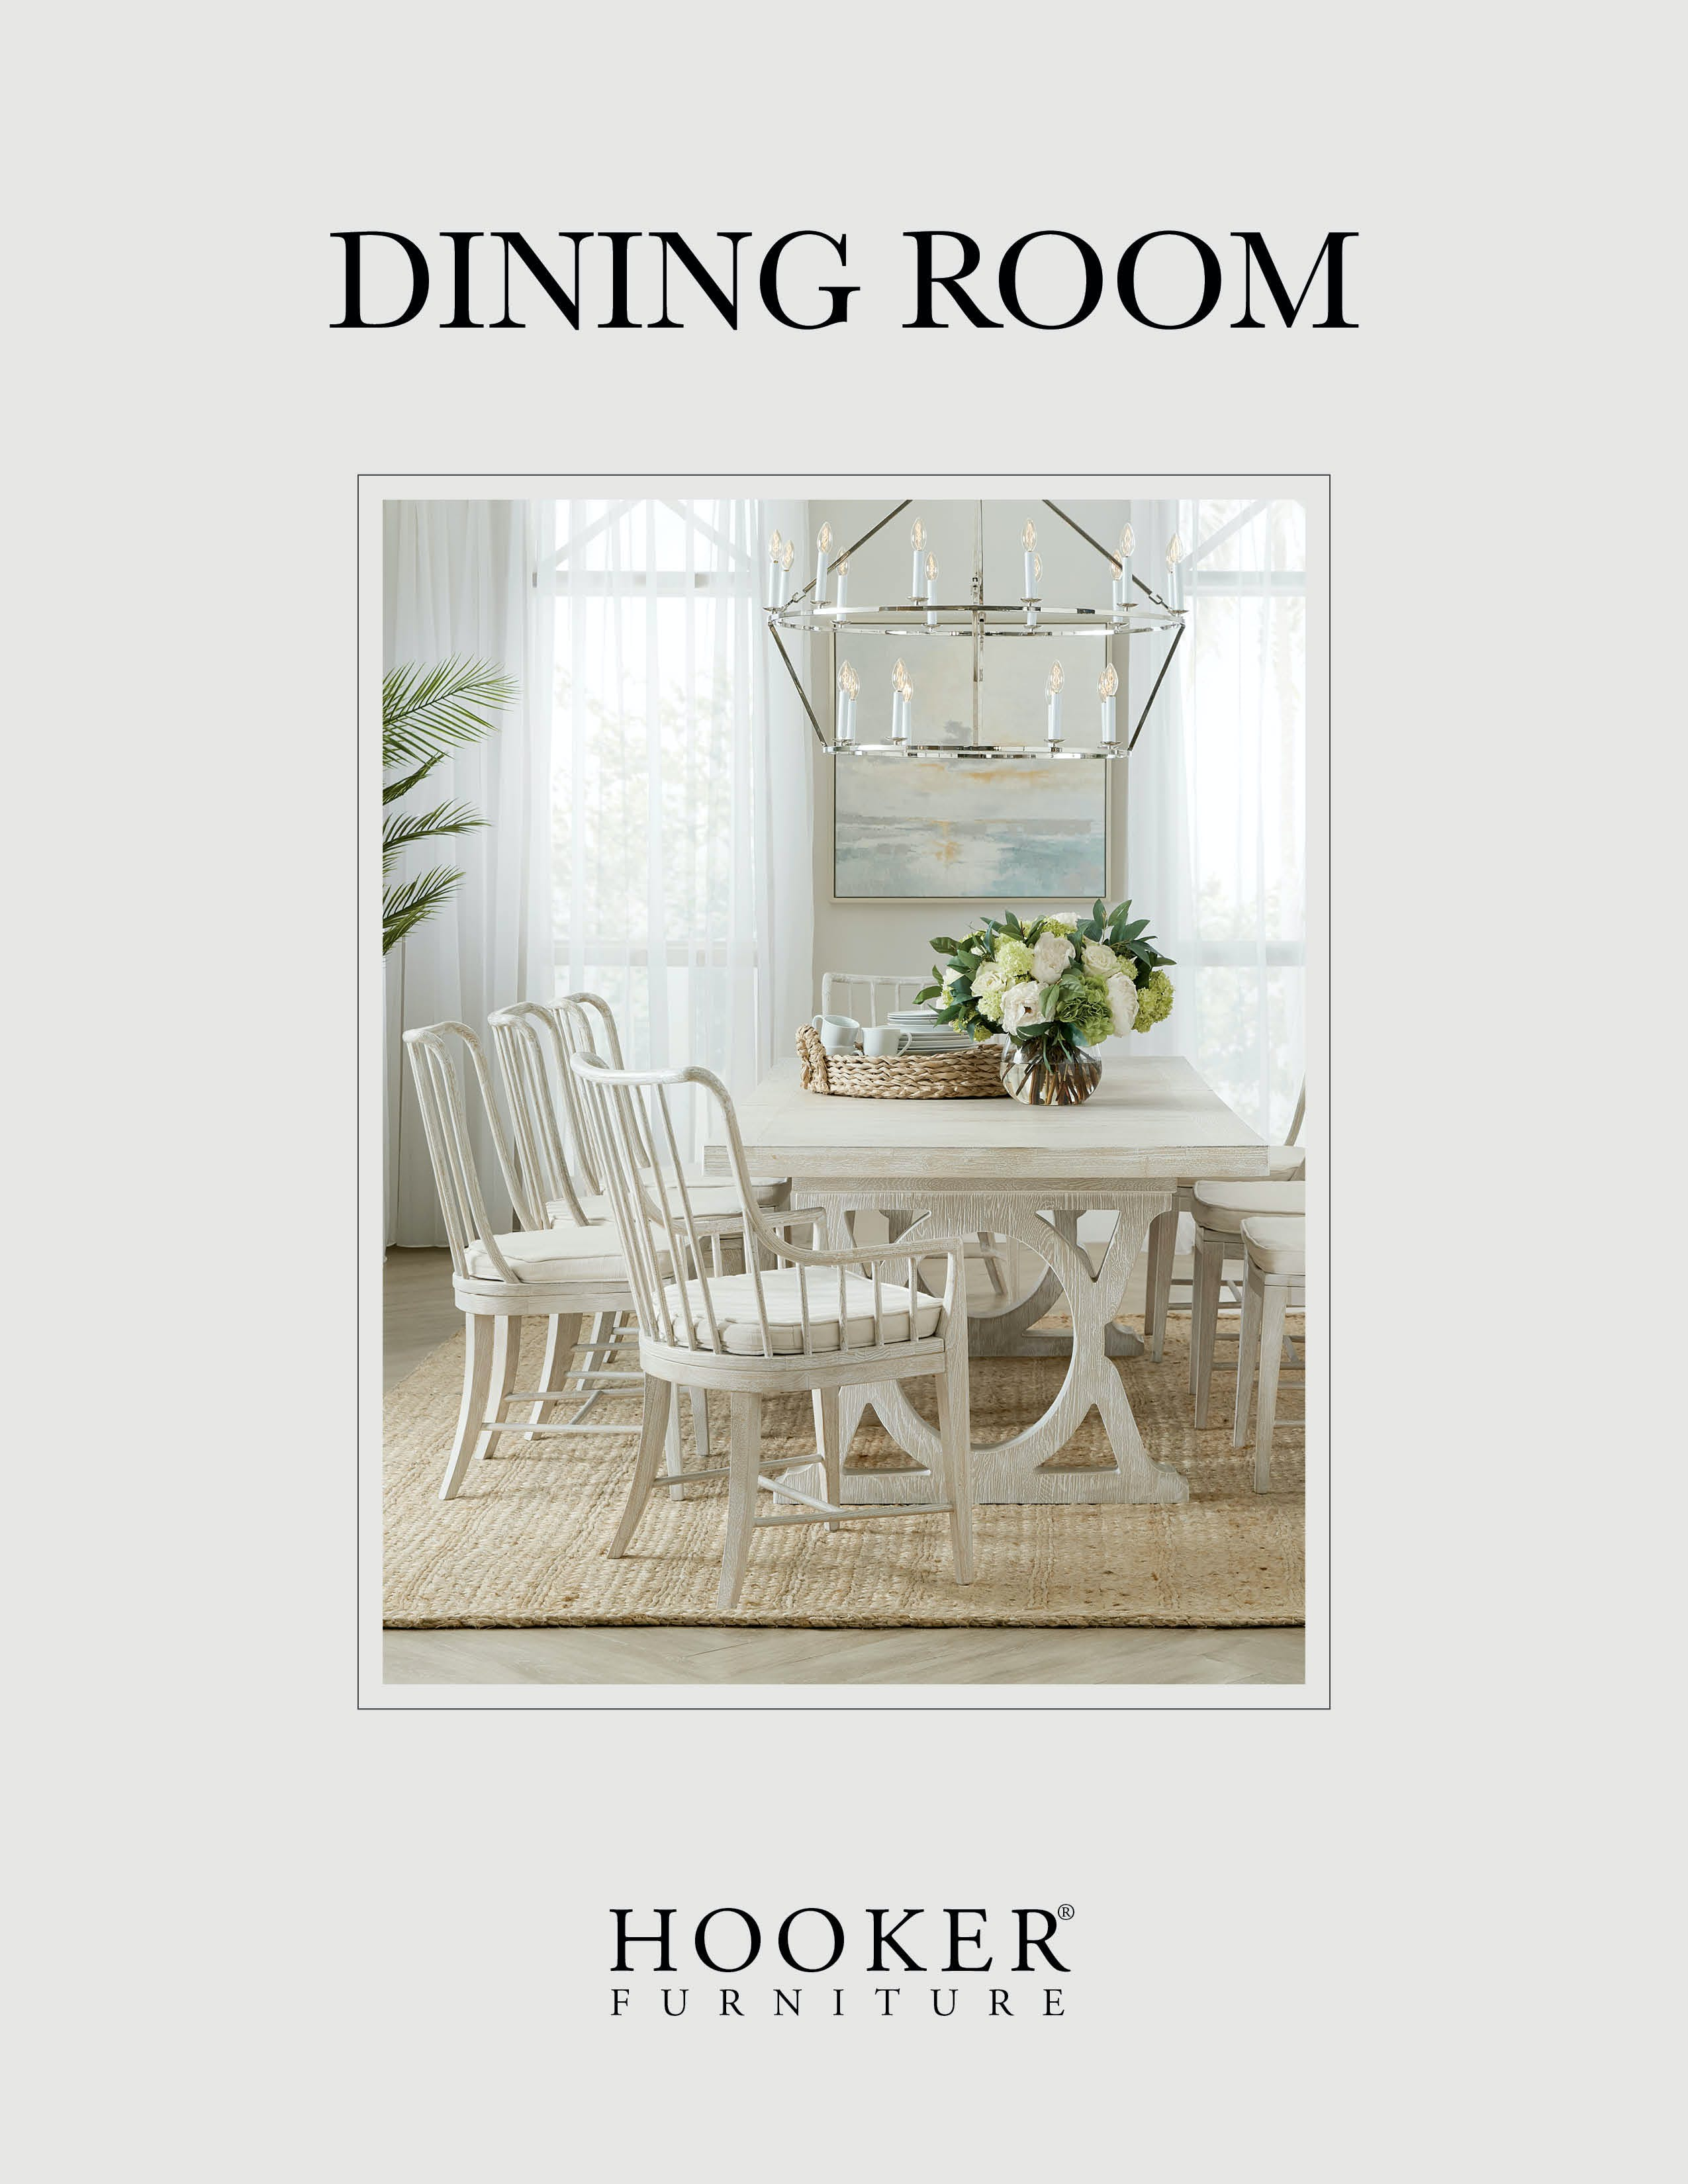 product & furniture collection catalogs | hooker furniture